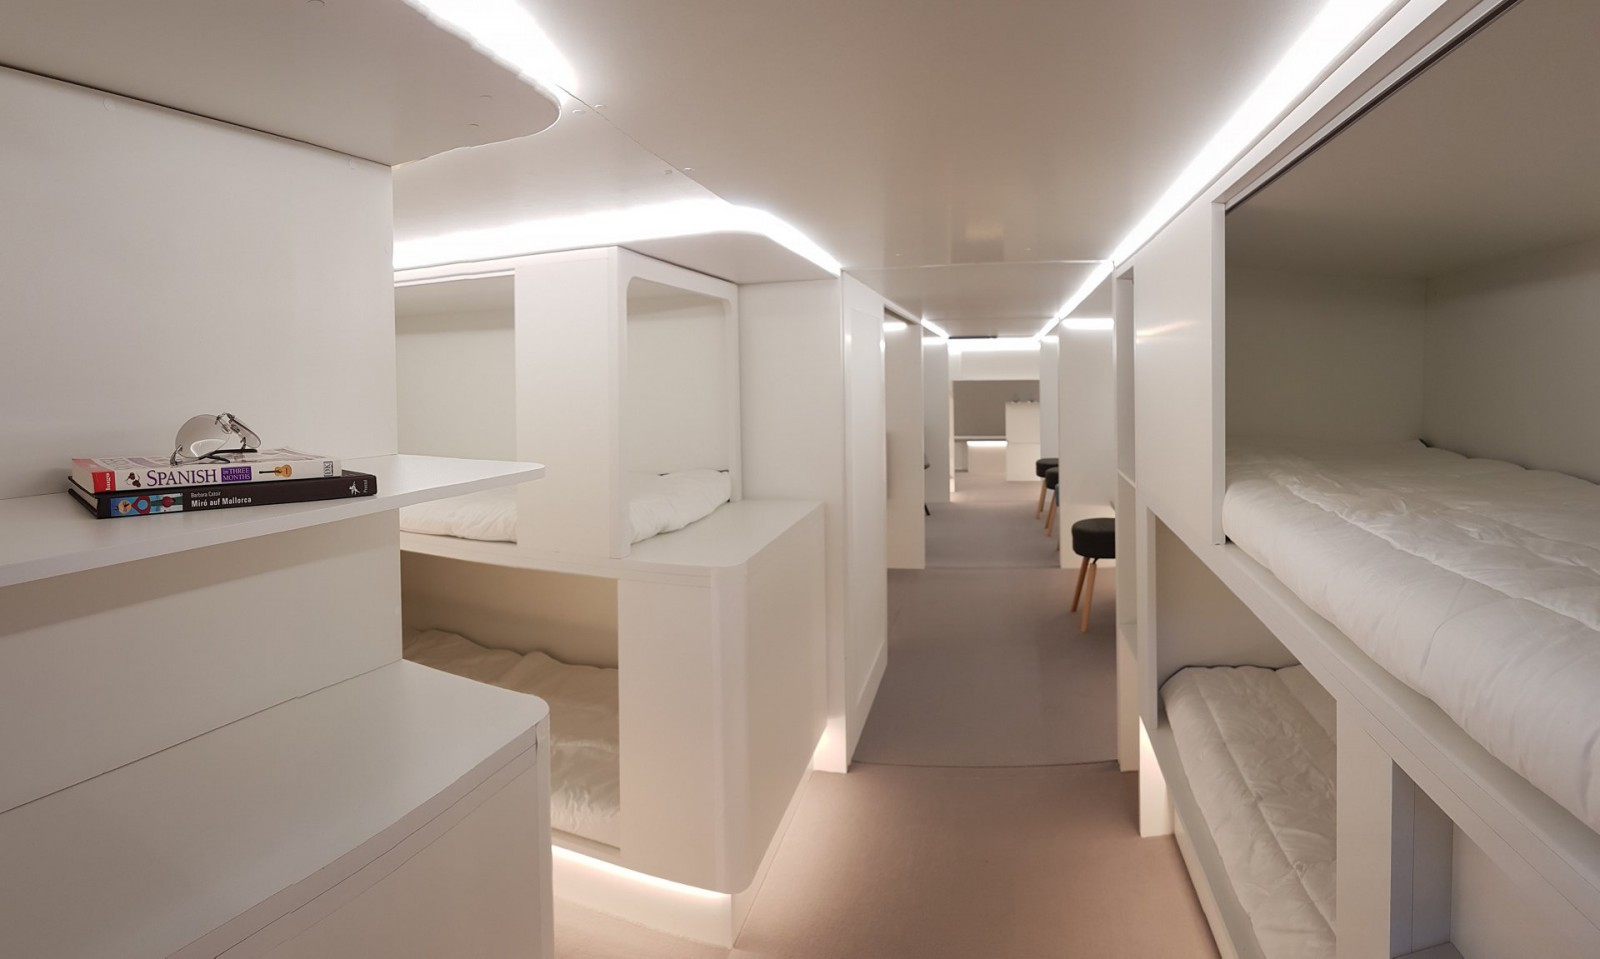 Airbus unveils plans to introduce sleeping berths in cargo decks by 2020